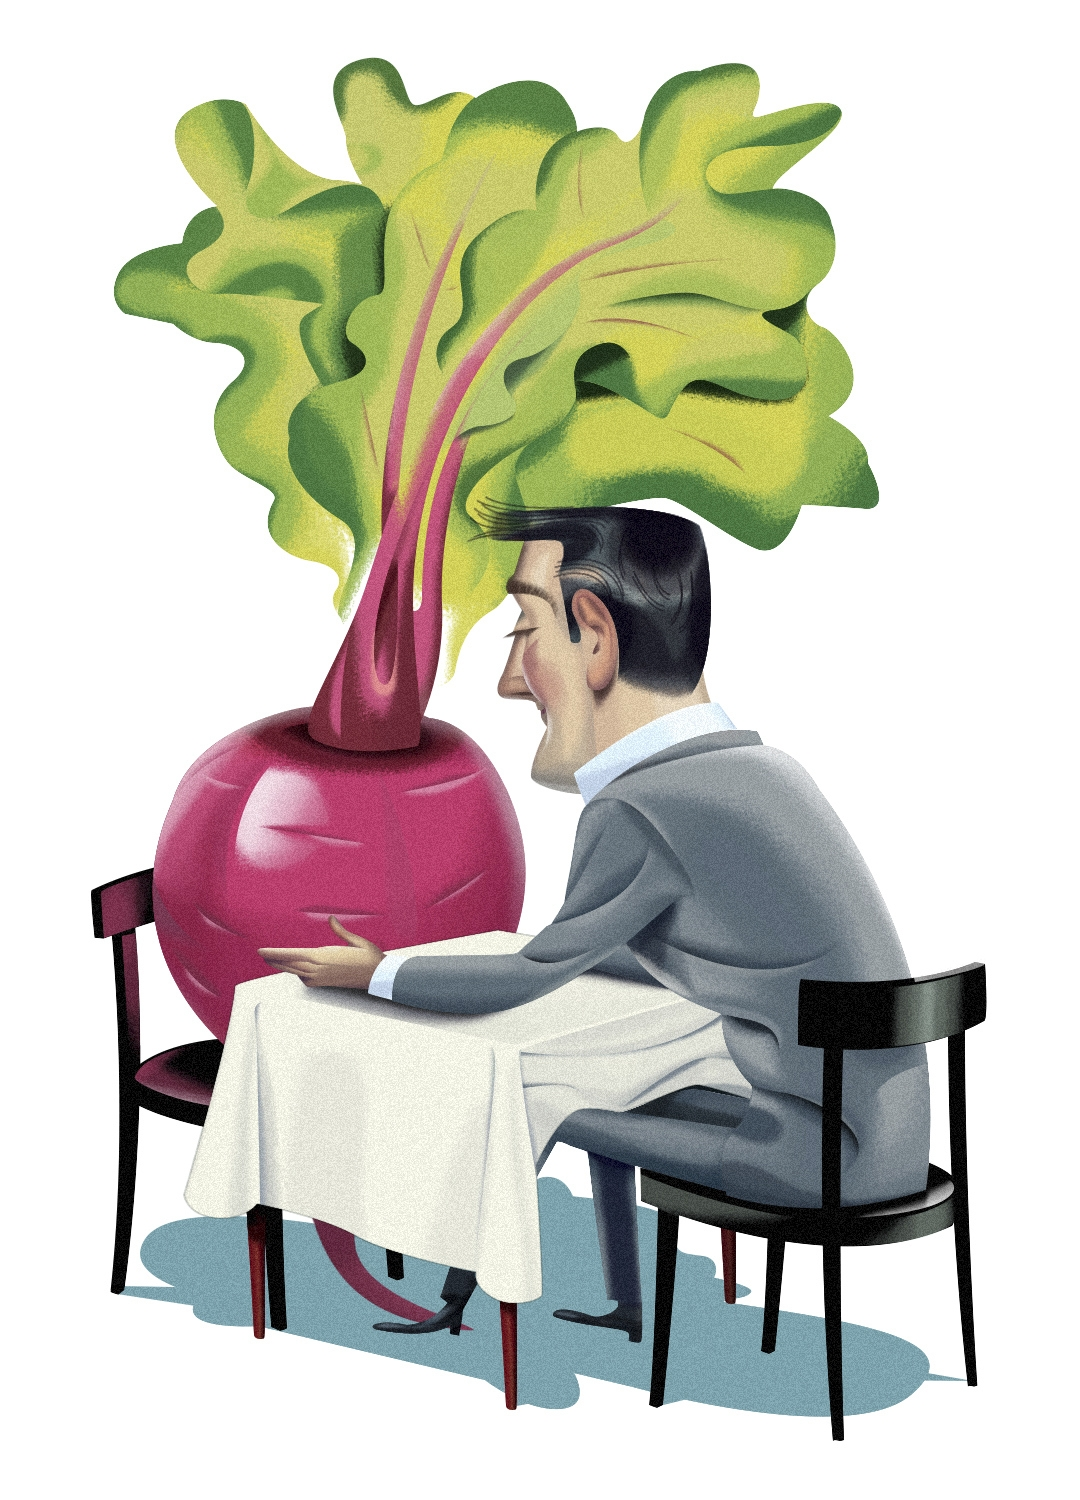 Reconsidering foods that have been tried and rejected as a grown-up can open up new culinary horizons as our taste buds evolve with age. (Nigel Buchanan/The New York Times) — NO SALES; FOR EDITORIAL USE ONLY WITH STORY SLUGGED EVOLVING-PALATES BY FRANK BRUNI. ALL OTHER USE PROHIBITED.